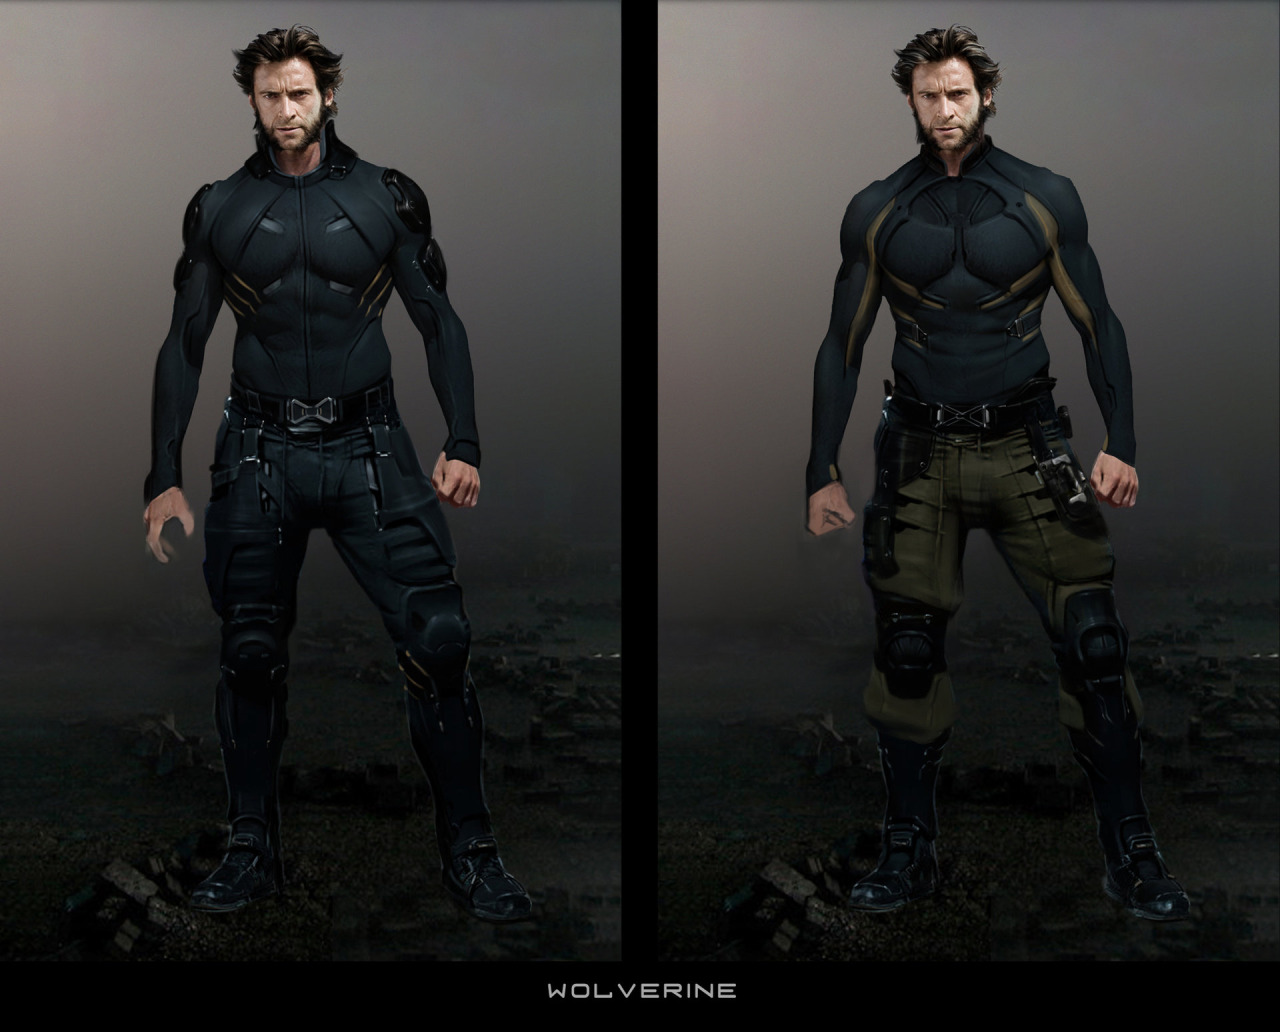 x-men days of future past wolverine concept art joshua james (5)